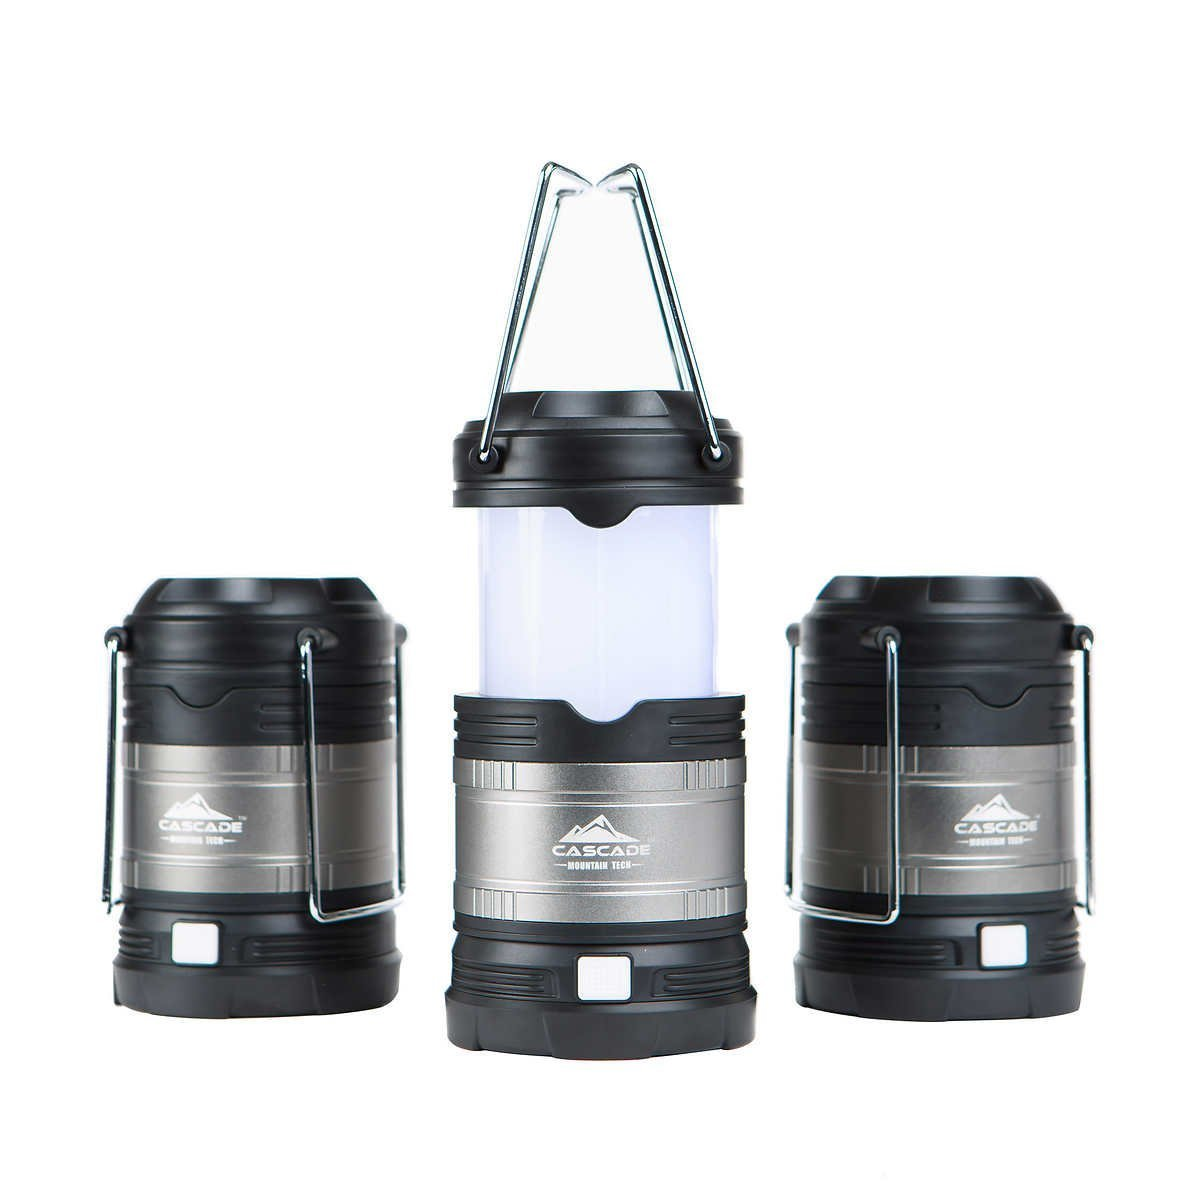 Cascade Mountain Tech Collapsible LED Lantern, Perfect Lighting for Camping, BBQ's and Emergency Light - 3 Pack Batteries Included ... by Cascade Mountain Tech